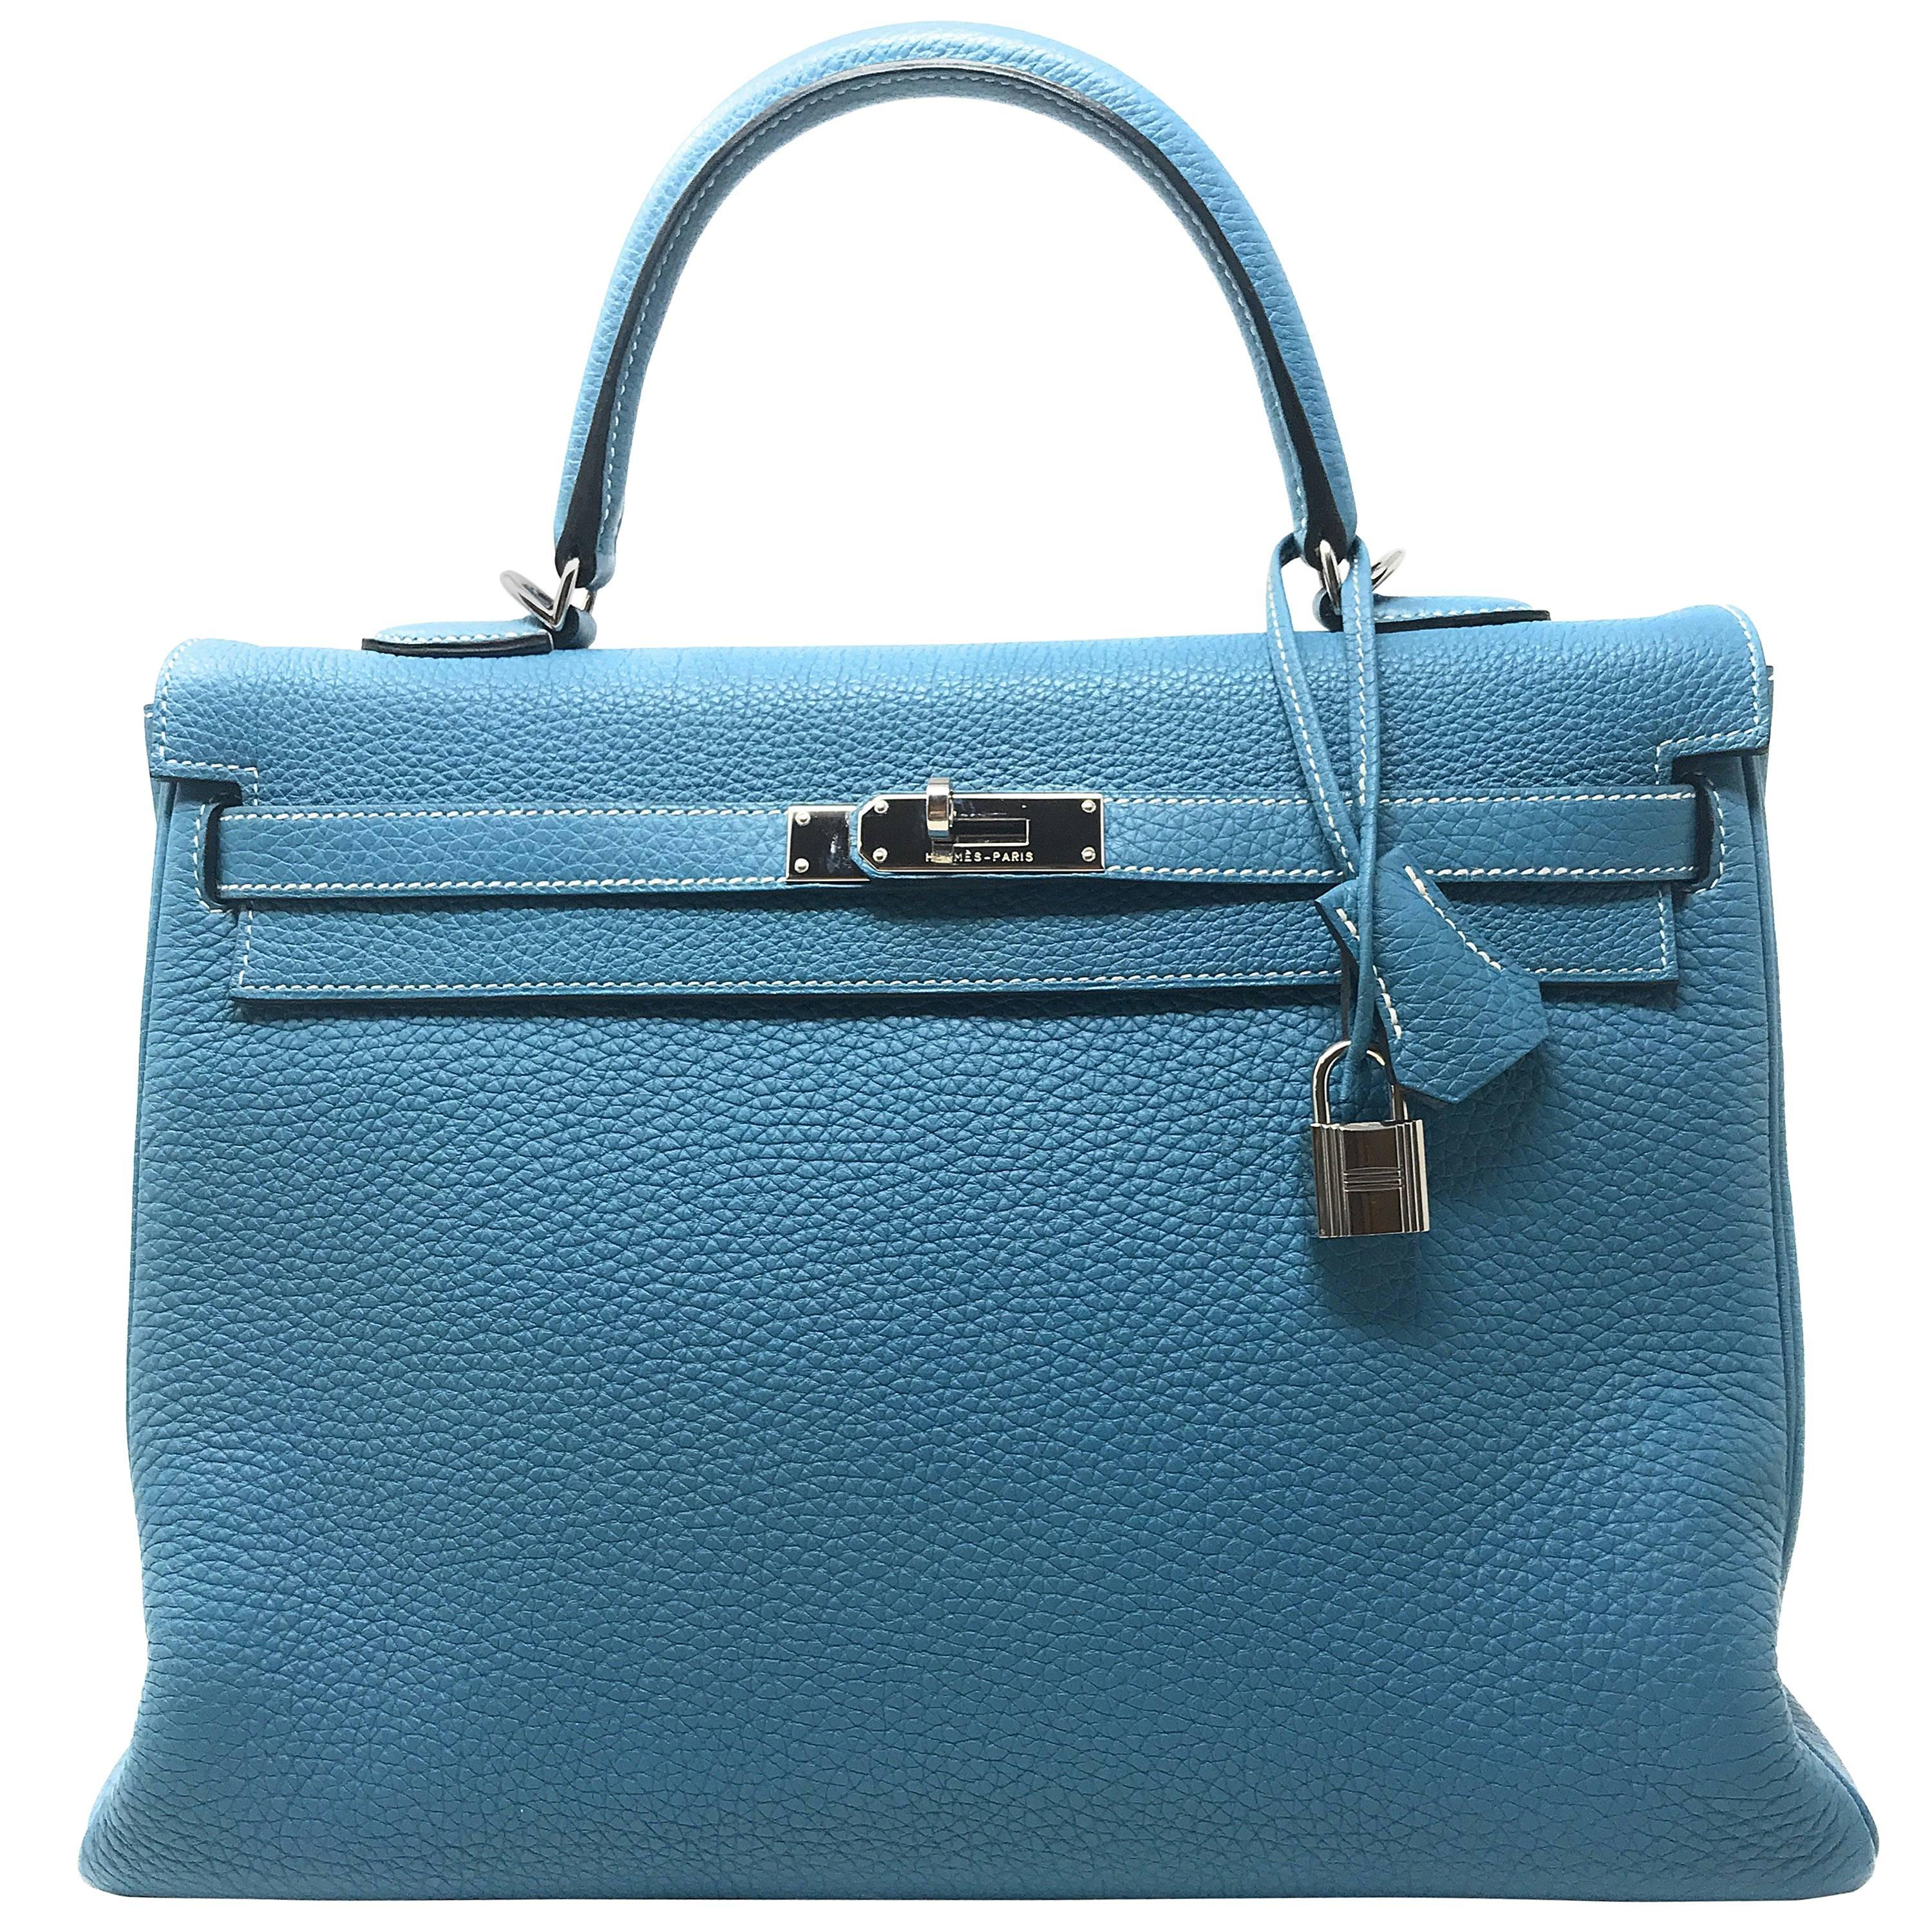 84336621ae clearance cheap replica hermes kelly 35cm bag for sale online 90a8f ca0cf   coupon code for hermes kelly 35cm blue jean for sale 0382b 5ddb5